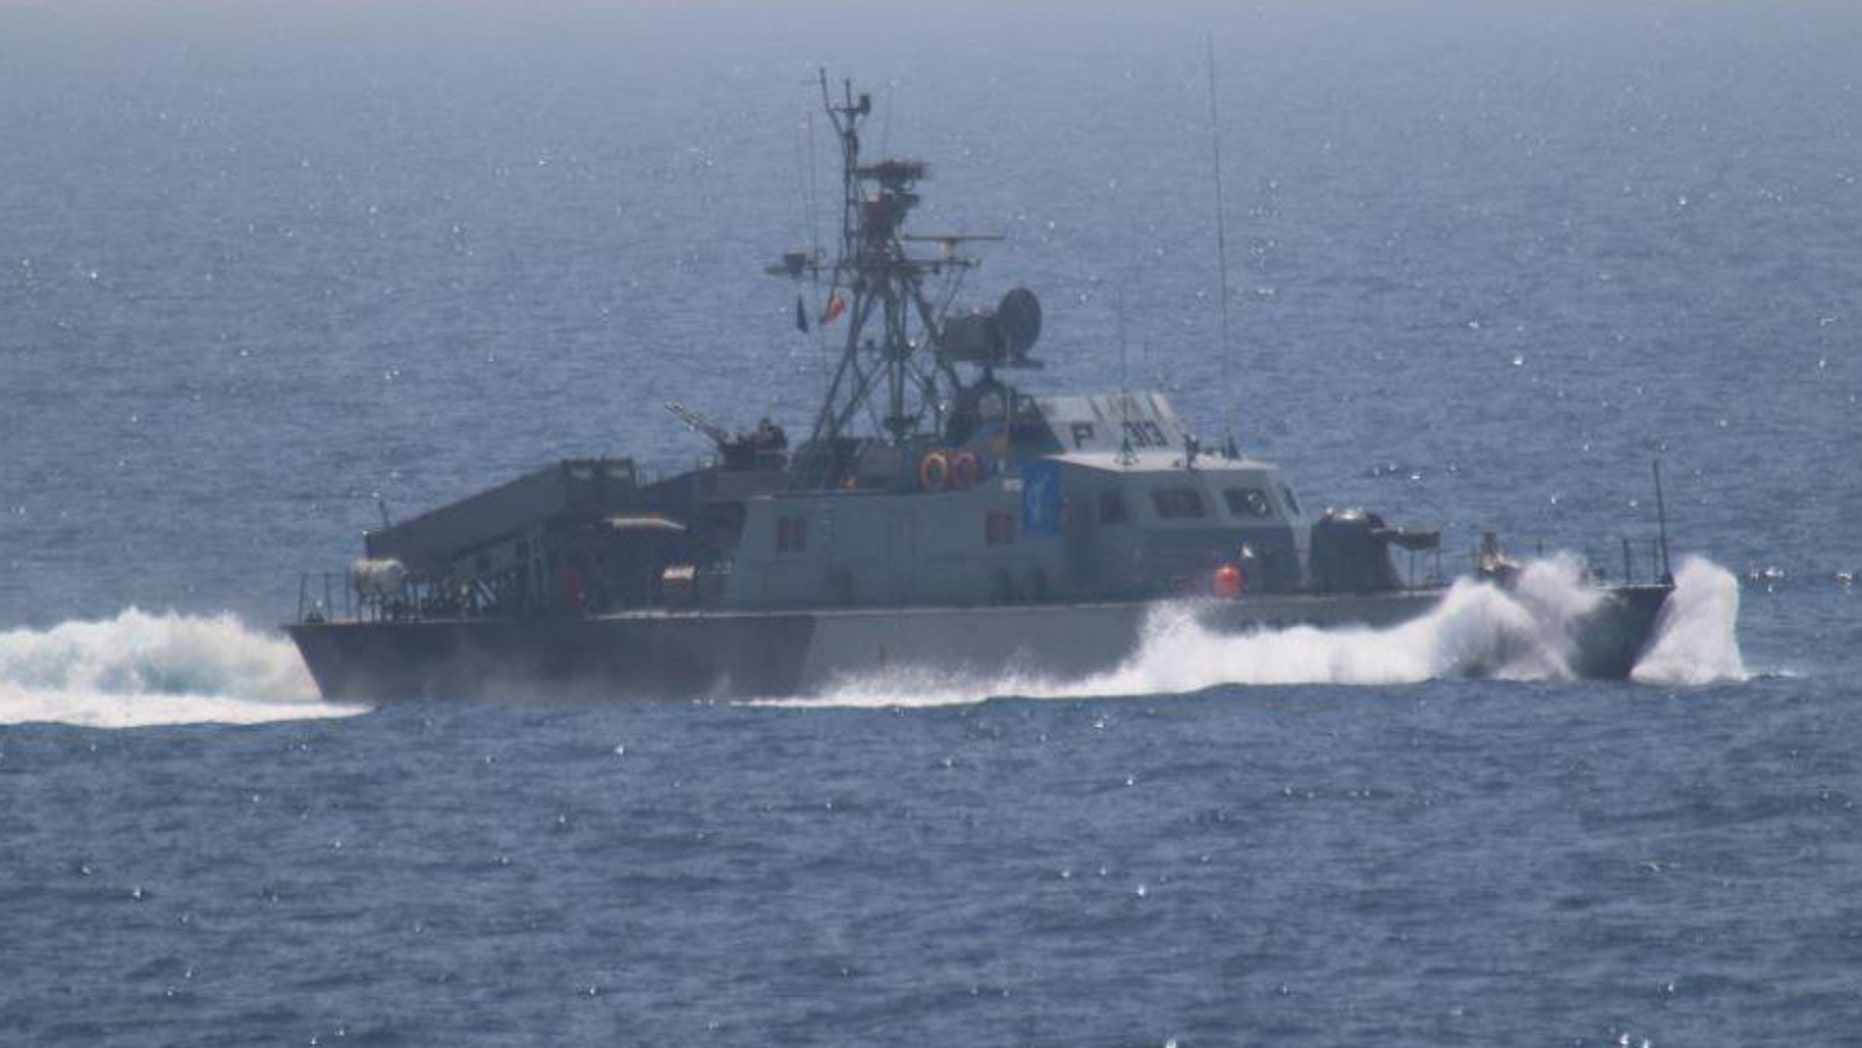 One of the five military vessels from Iran's Revolutionary Guard Corps that approached a U.S. warship hosting one of America's top generals on a day trip through the Strait of Hormuz is pictured in this July 11, 2016 handout photo.